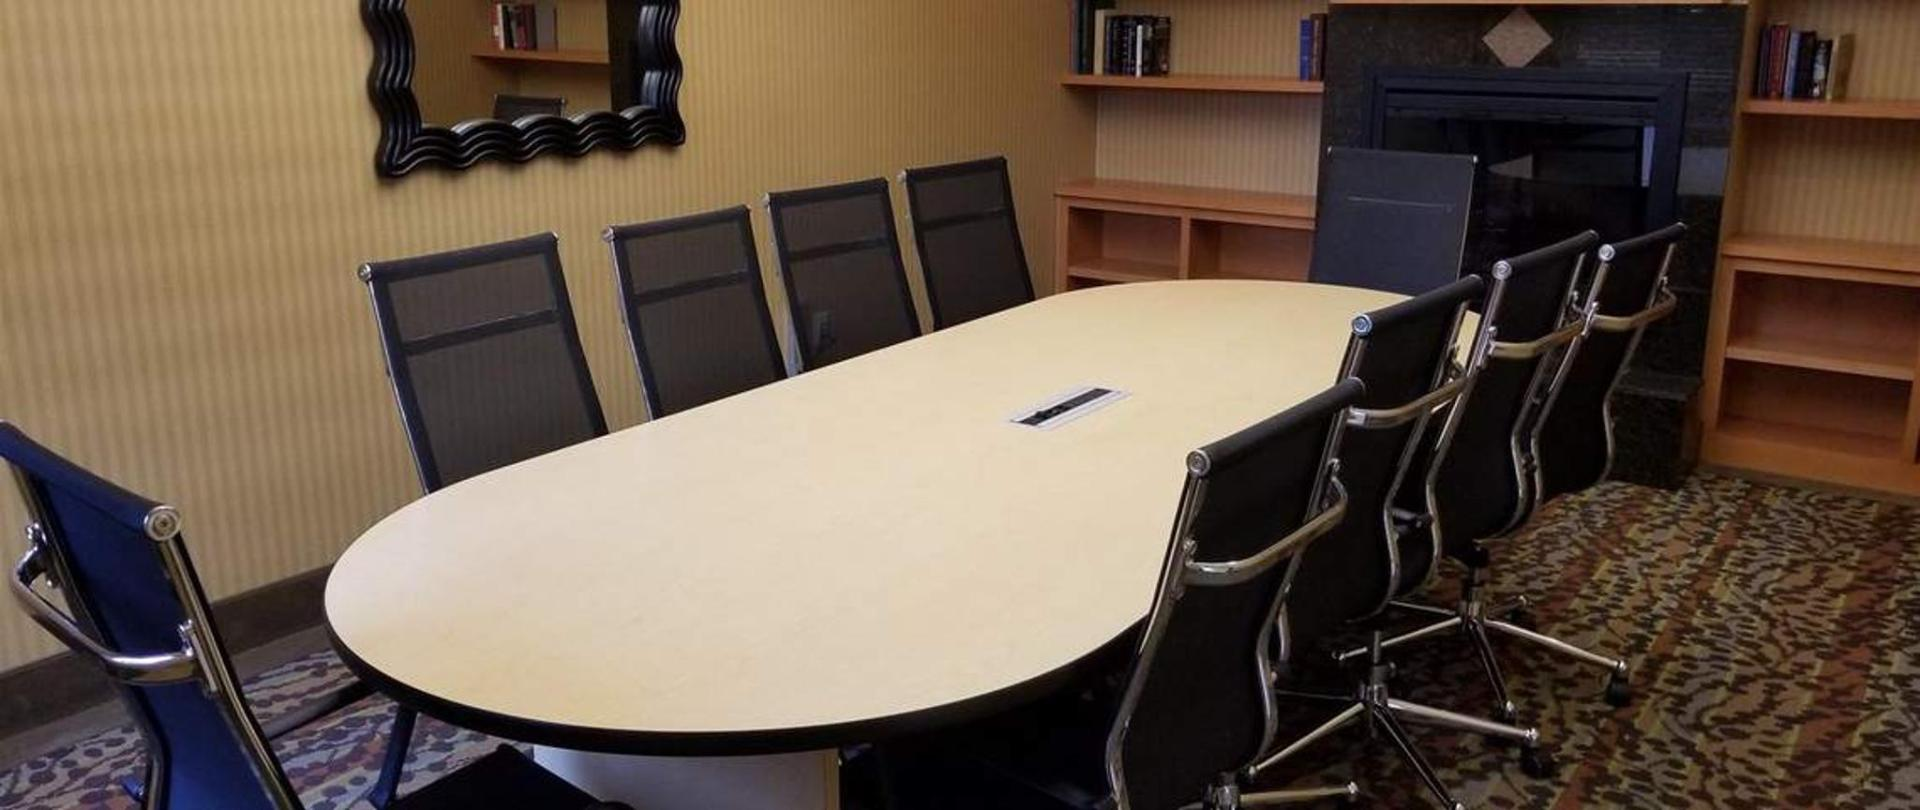 sleep-inn-meeting-room.jpg.1140x481_default.jpg